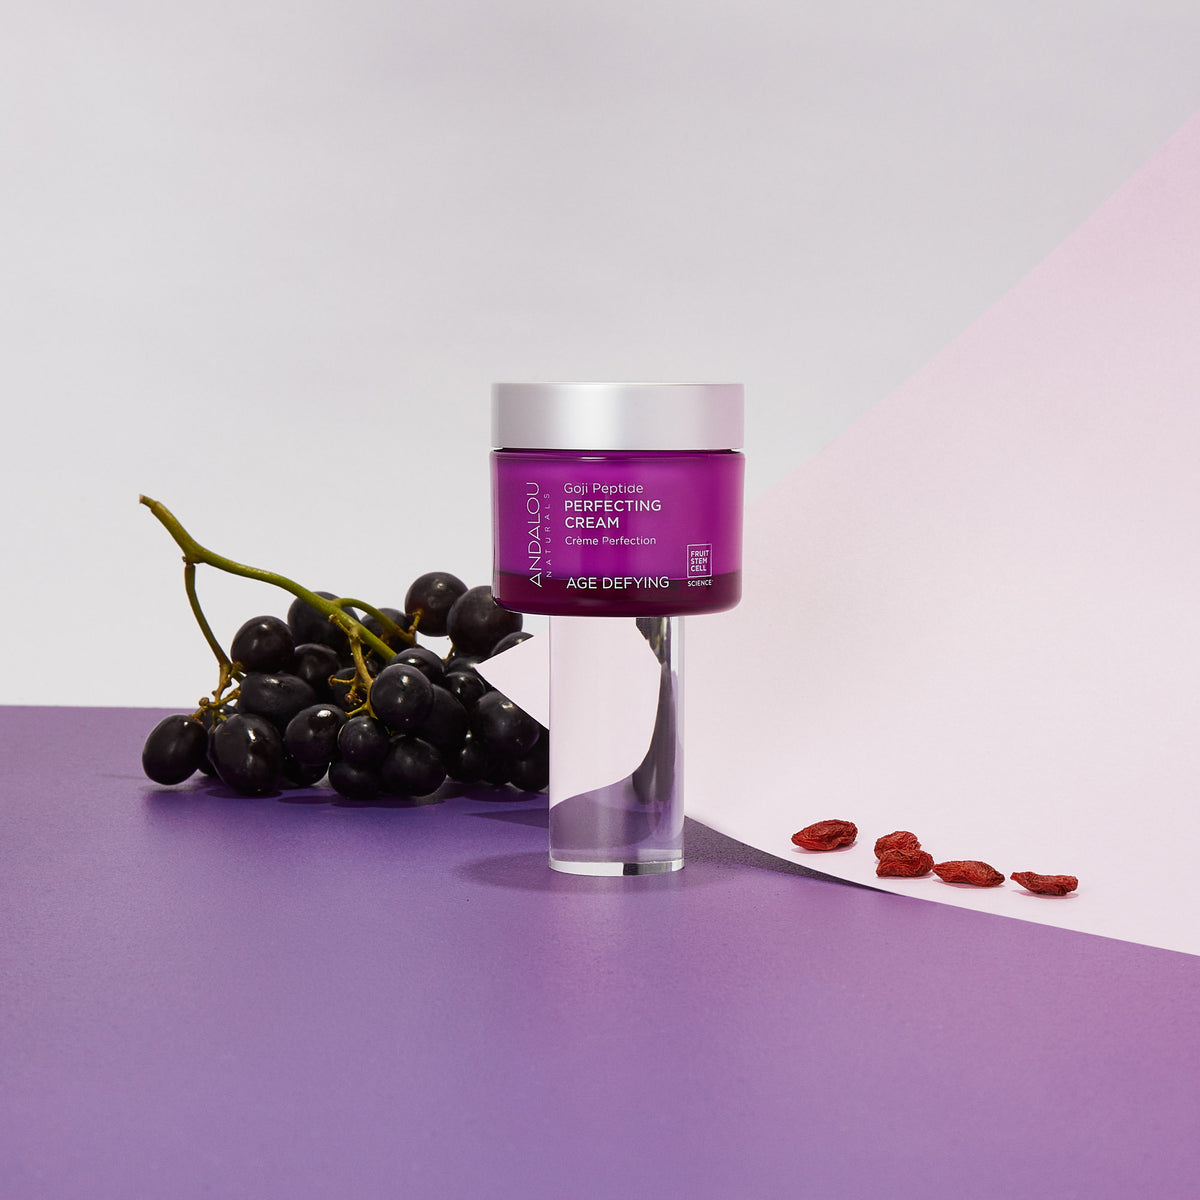 Andalou Naturals Age Defying Goji Peptide Perfecting Cream jar and concord grapes